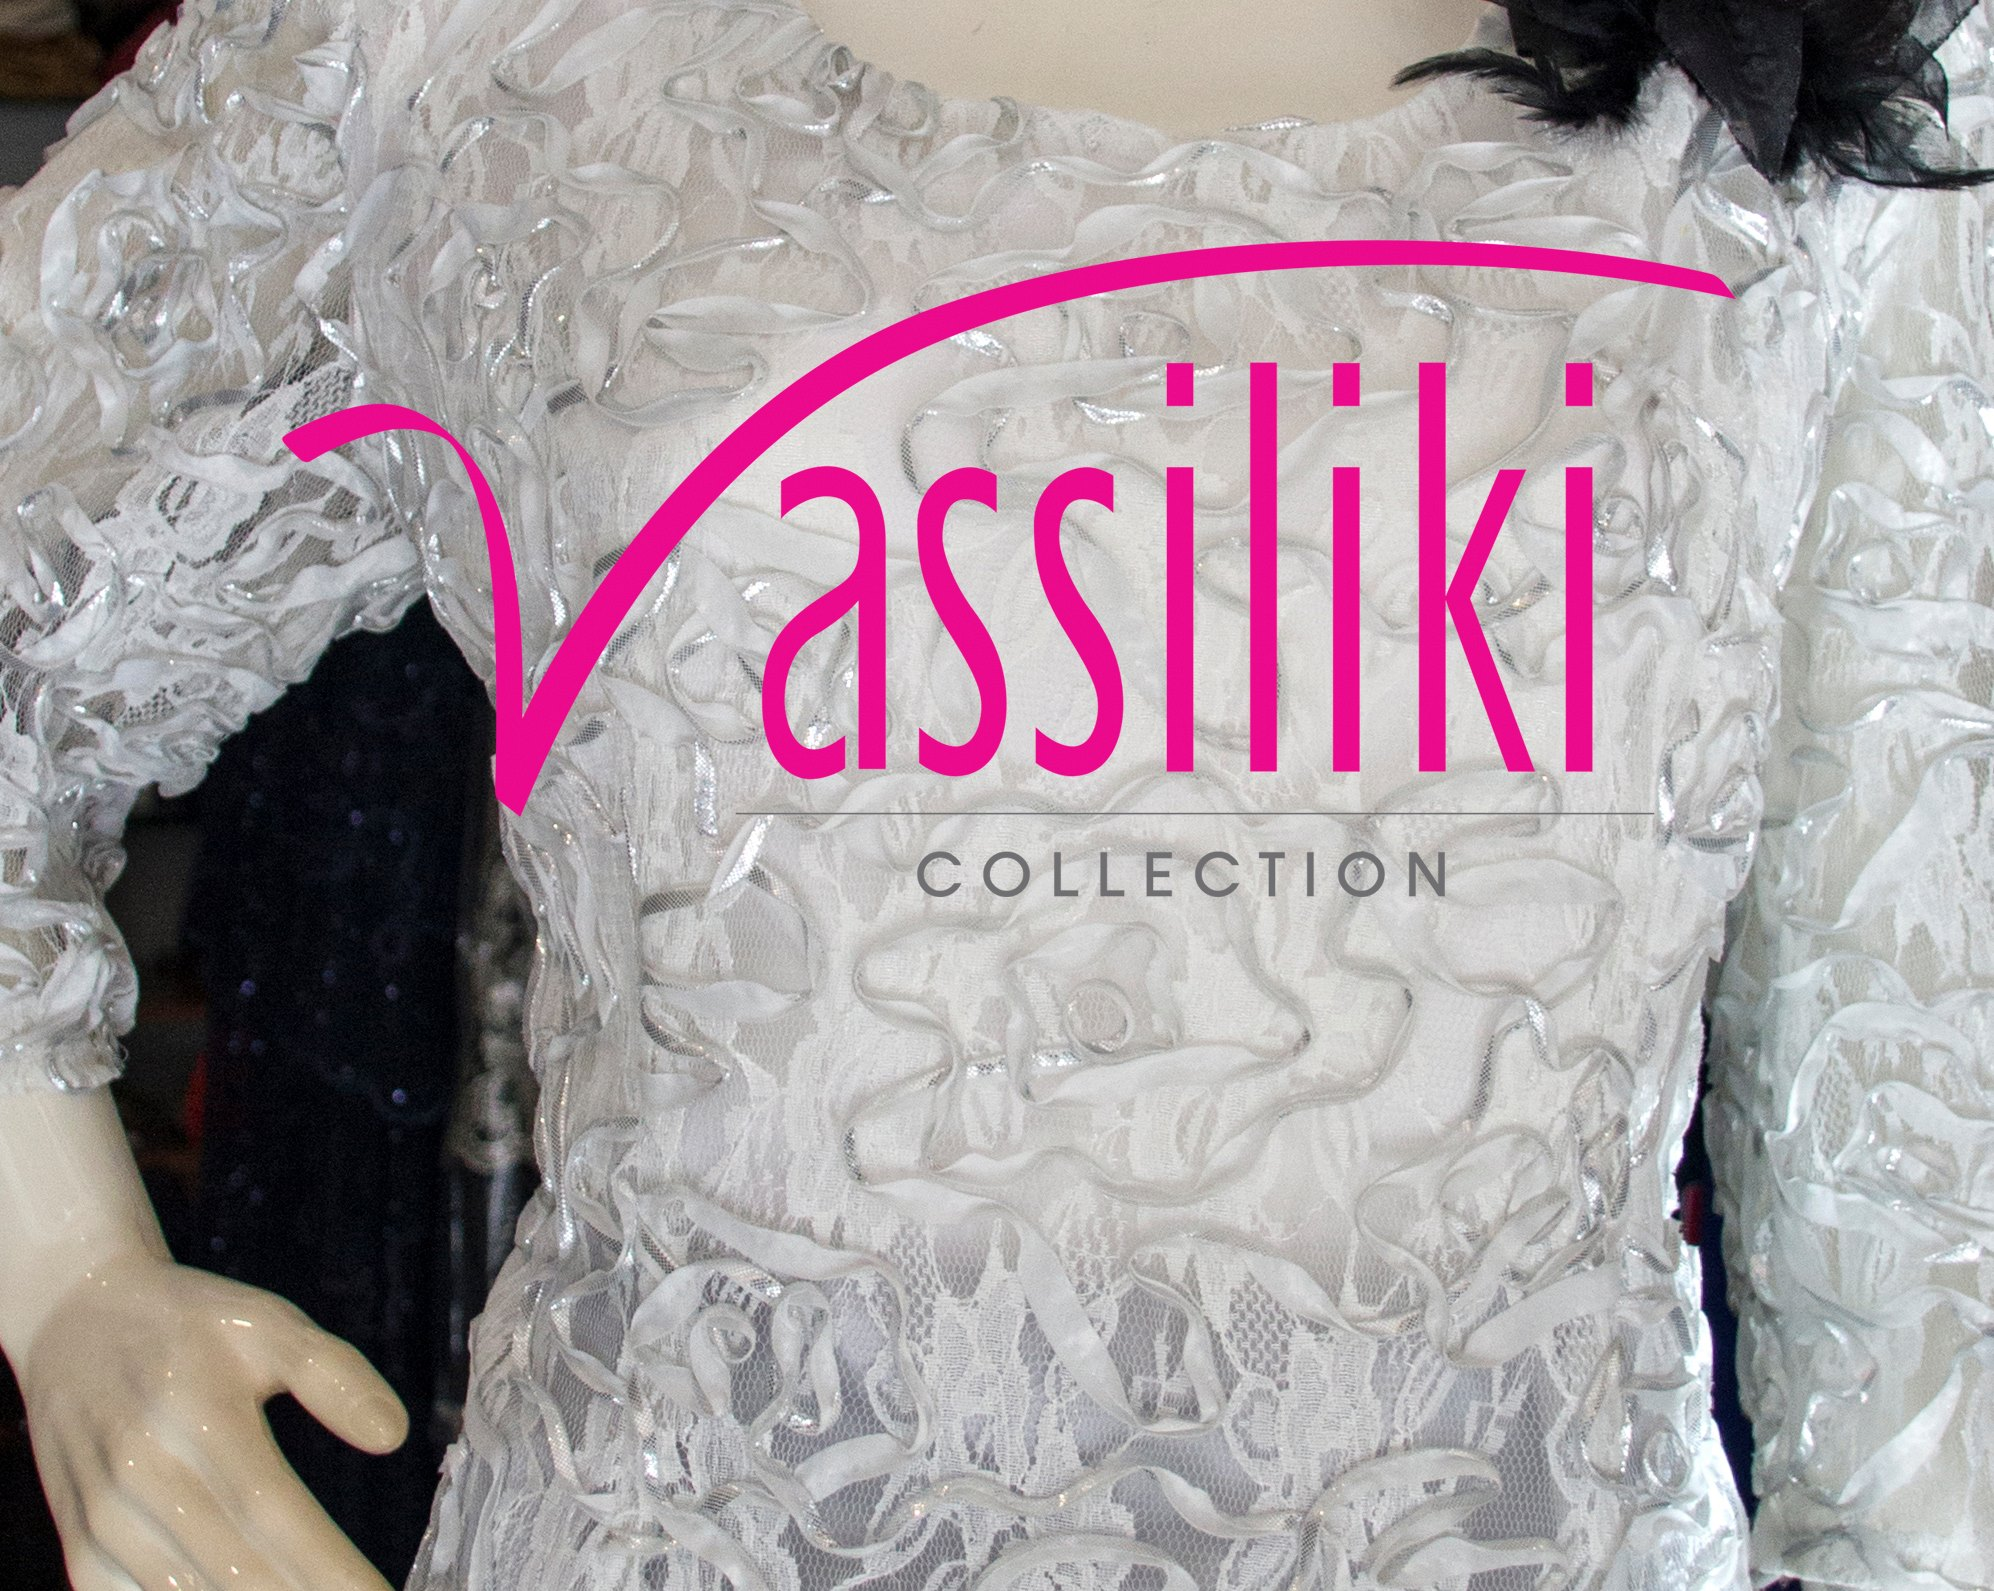 Vassiliki Collection - Stamatis Beis, Νυφικά